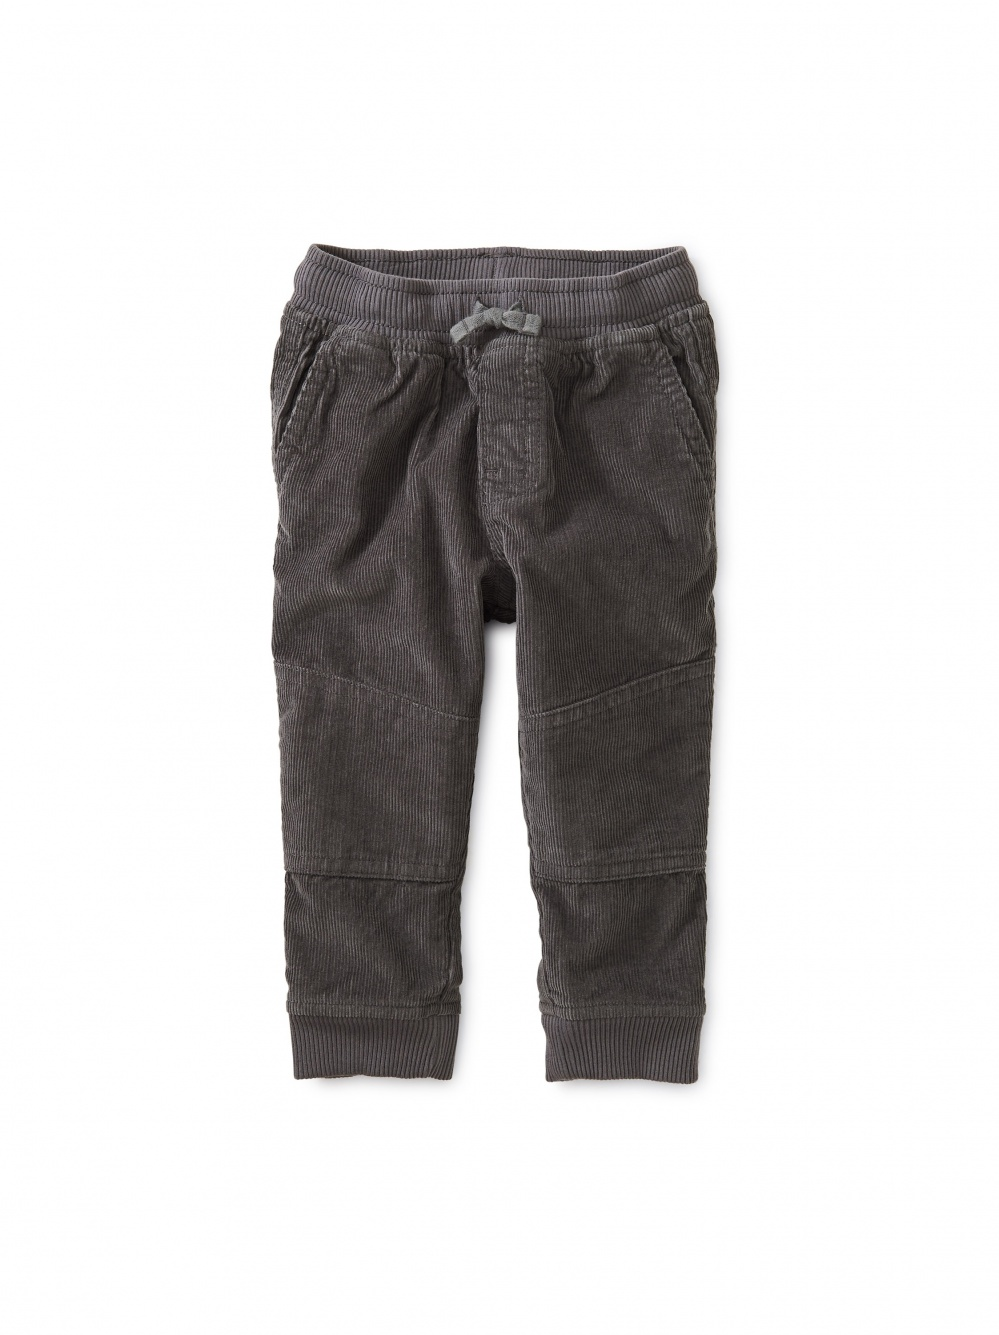 Cozy Jersey Lined Corduroy Baby Pant